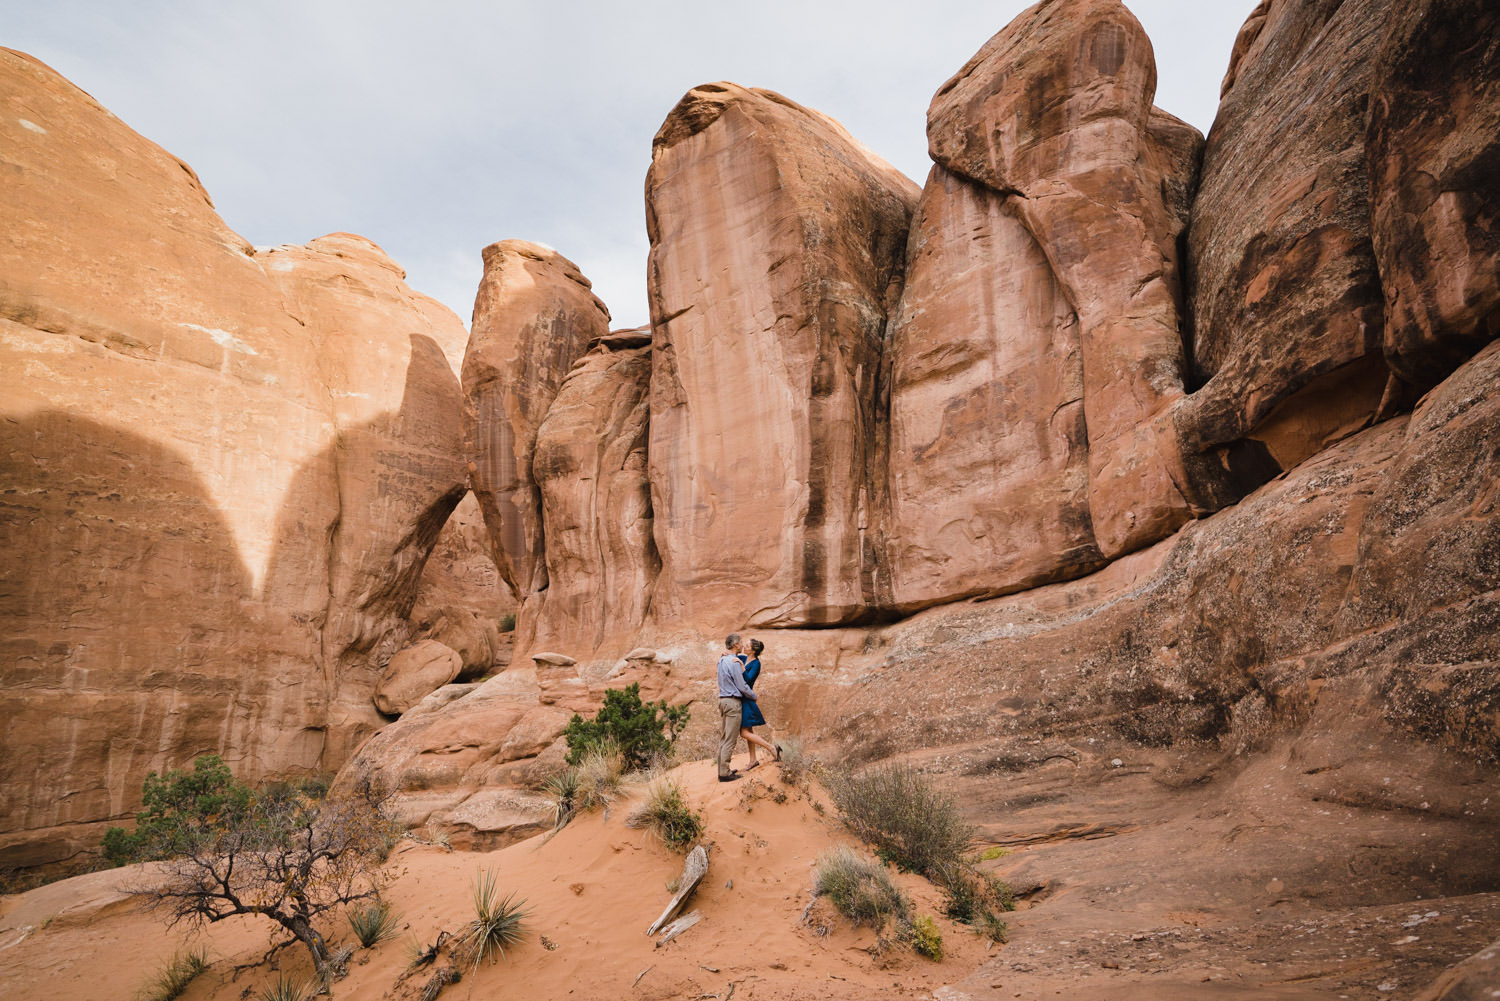 Arches engagement copule hugging in front of rock fins photo